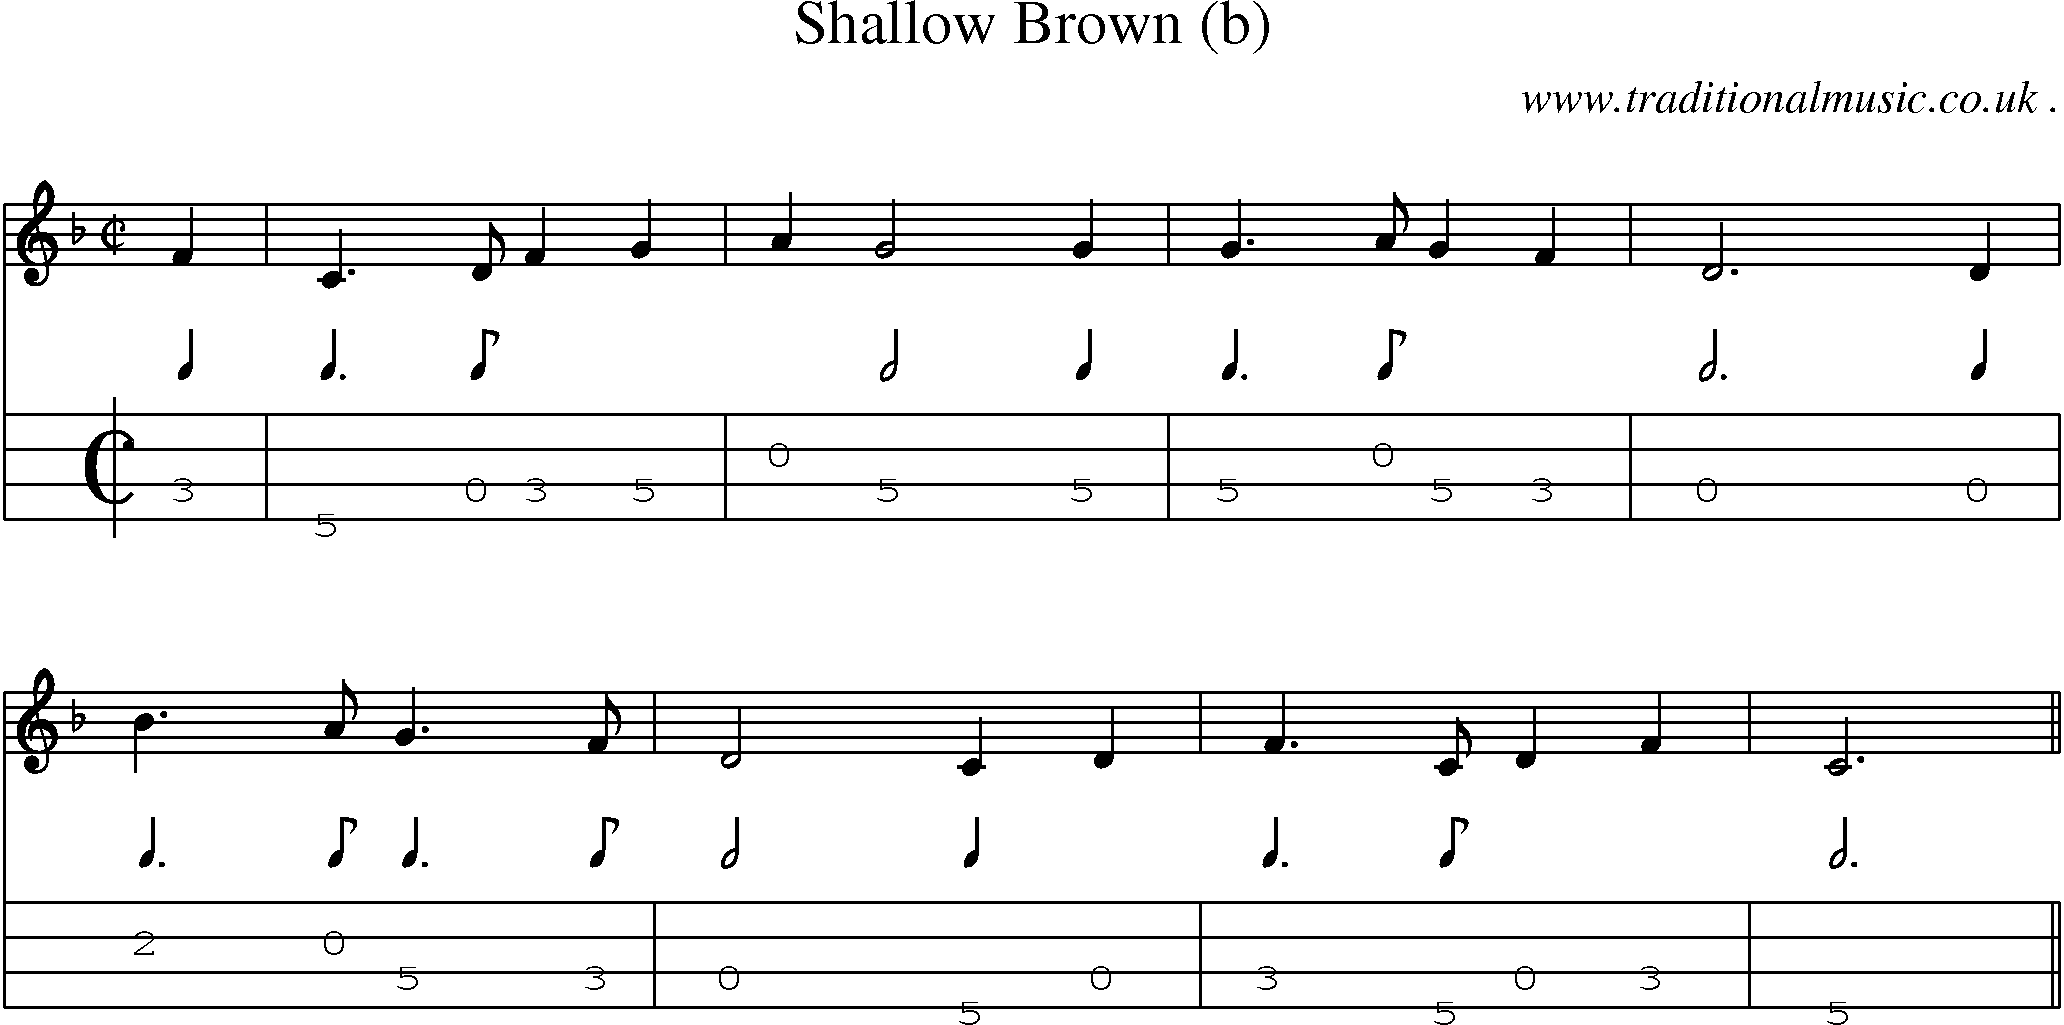 Folk and Traditional Music, Sheet-Music, Mandolin tab, midi, mp3 and